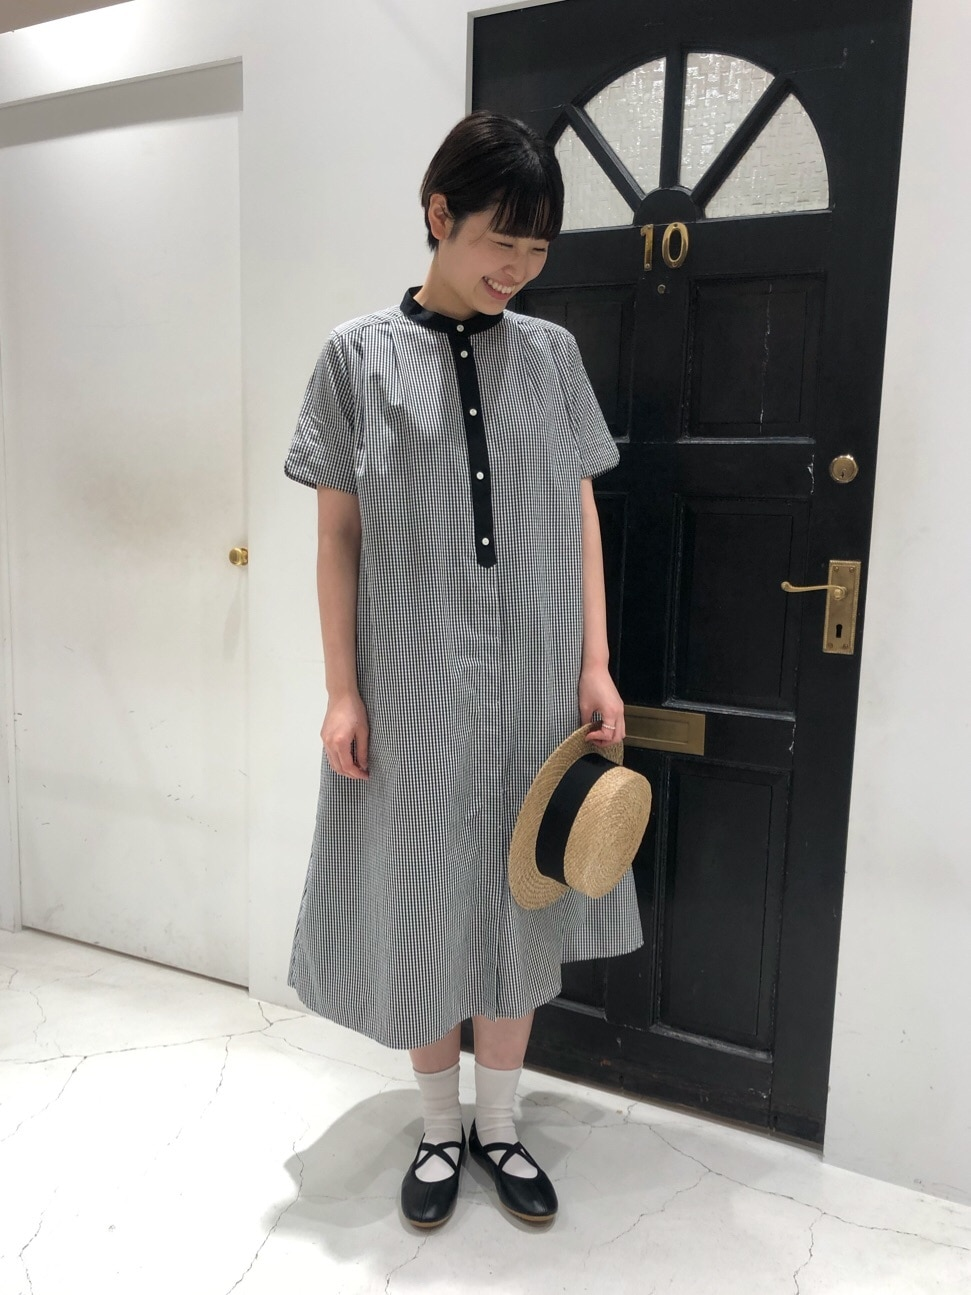 Dot and Stripes CHILD WOMAN ルクアイーレ 身長:165cm 2020.04.07